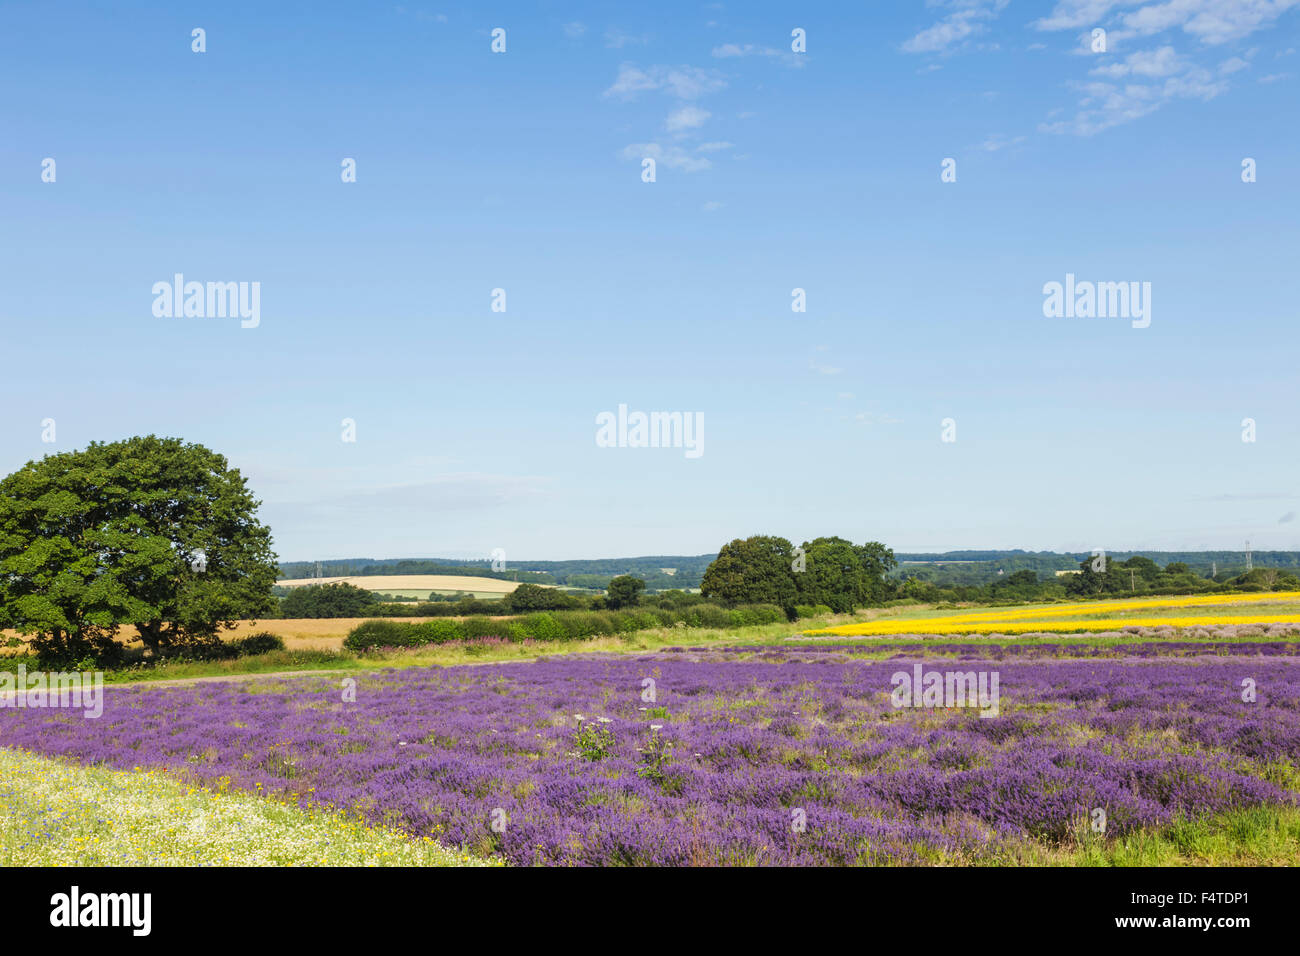 England, Hampshire, Lavender Fields - Stock Image